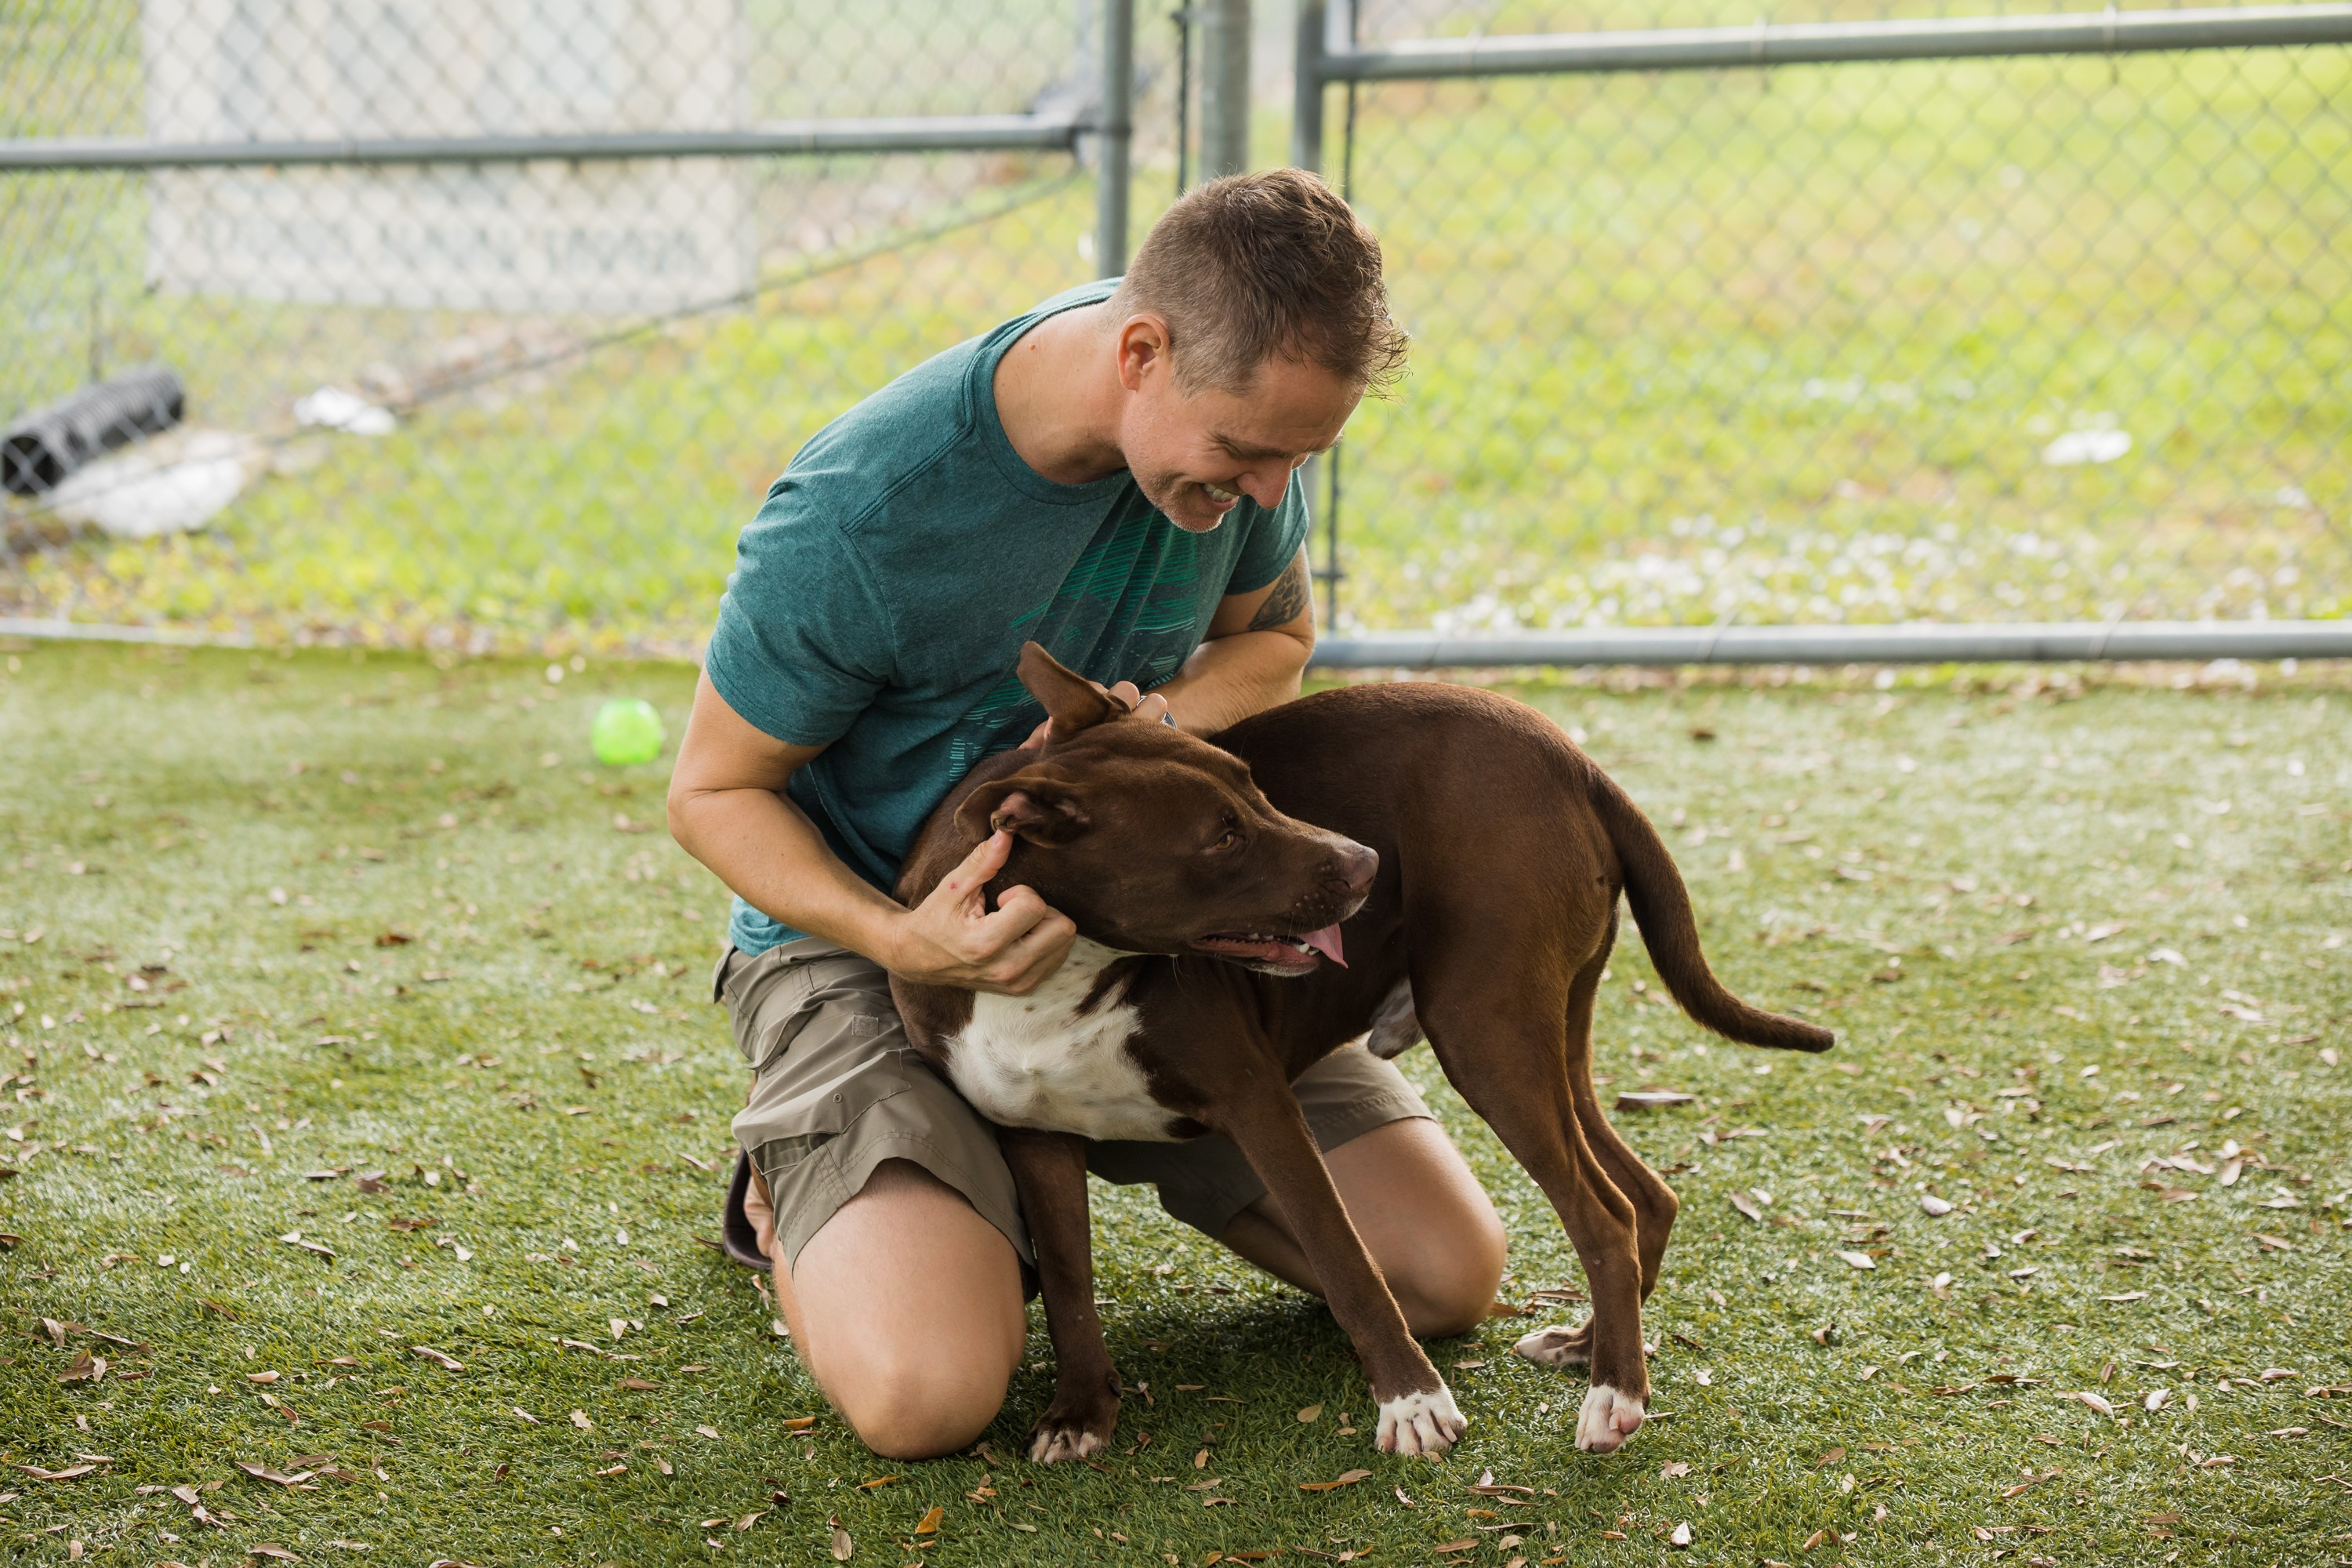 A man kneeling and embracing a large dog while smiling. The two of them are outside in one of Orange County Animal Services' play areas.